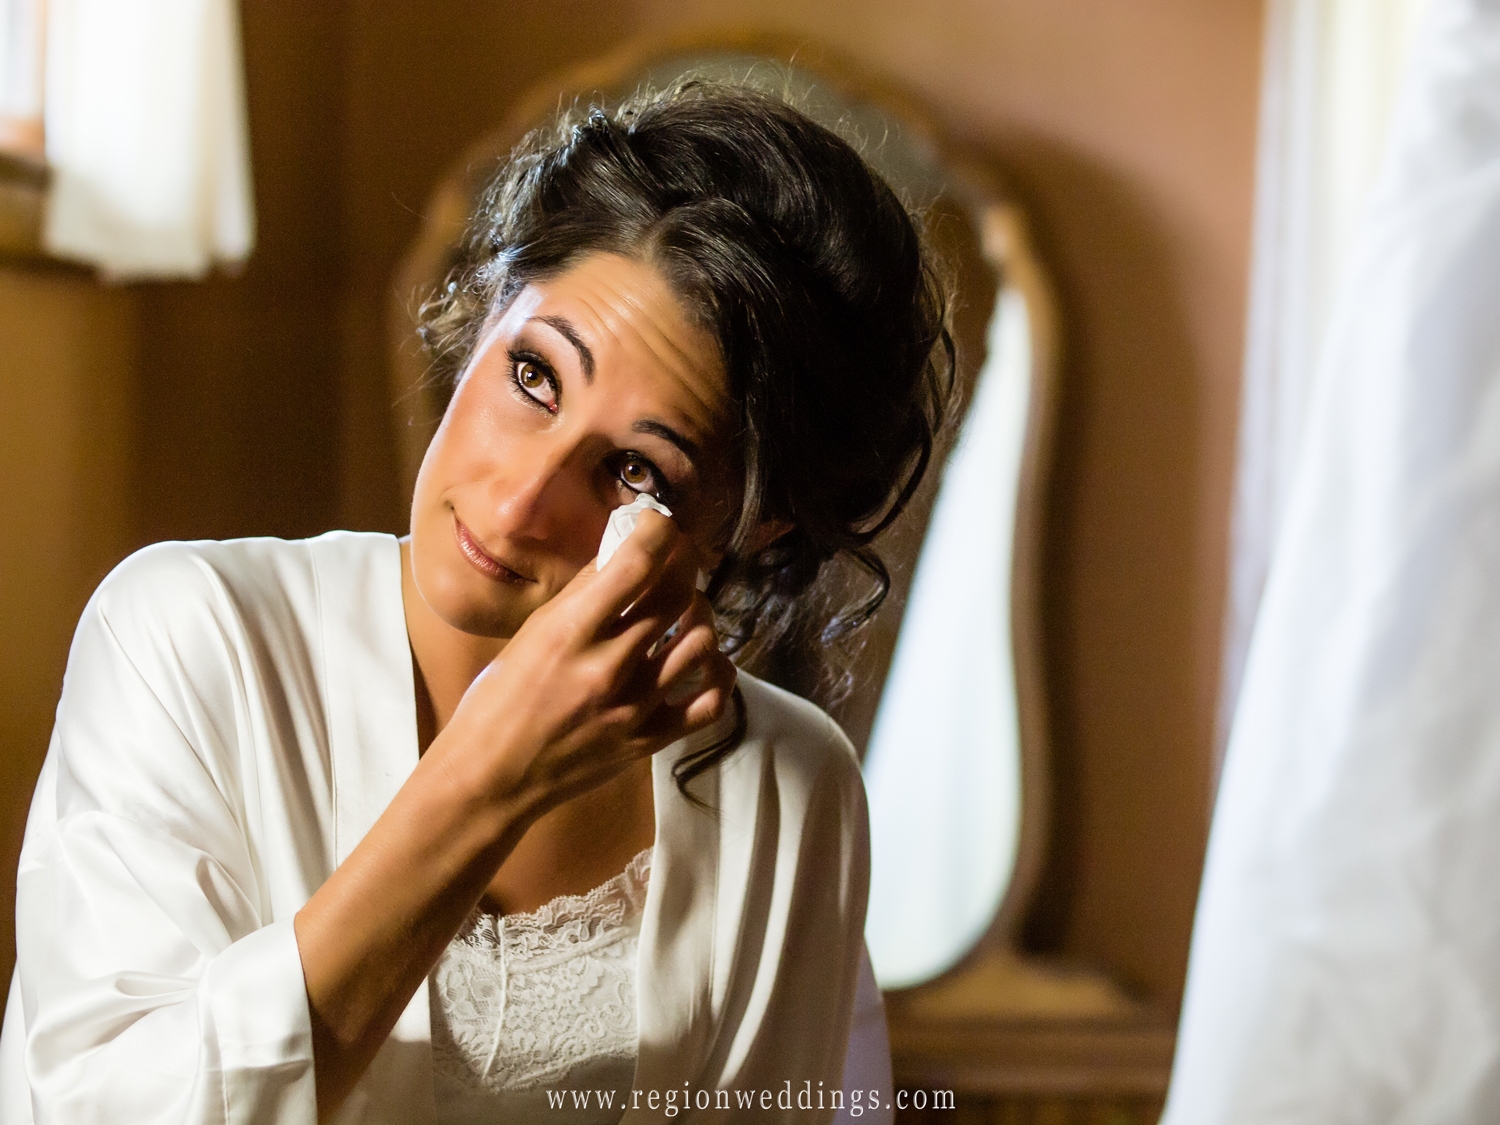 The bride wipes away tears in an emotional moment on the morning of her wedding.